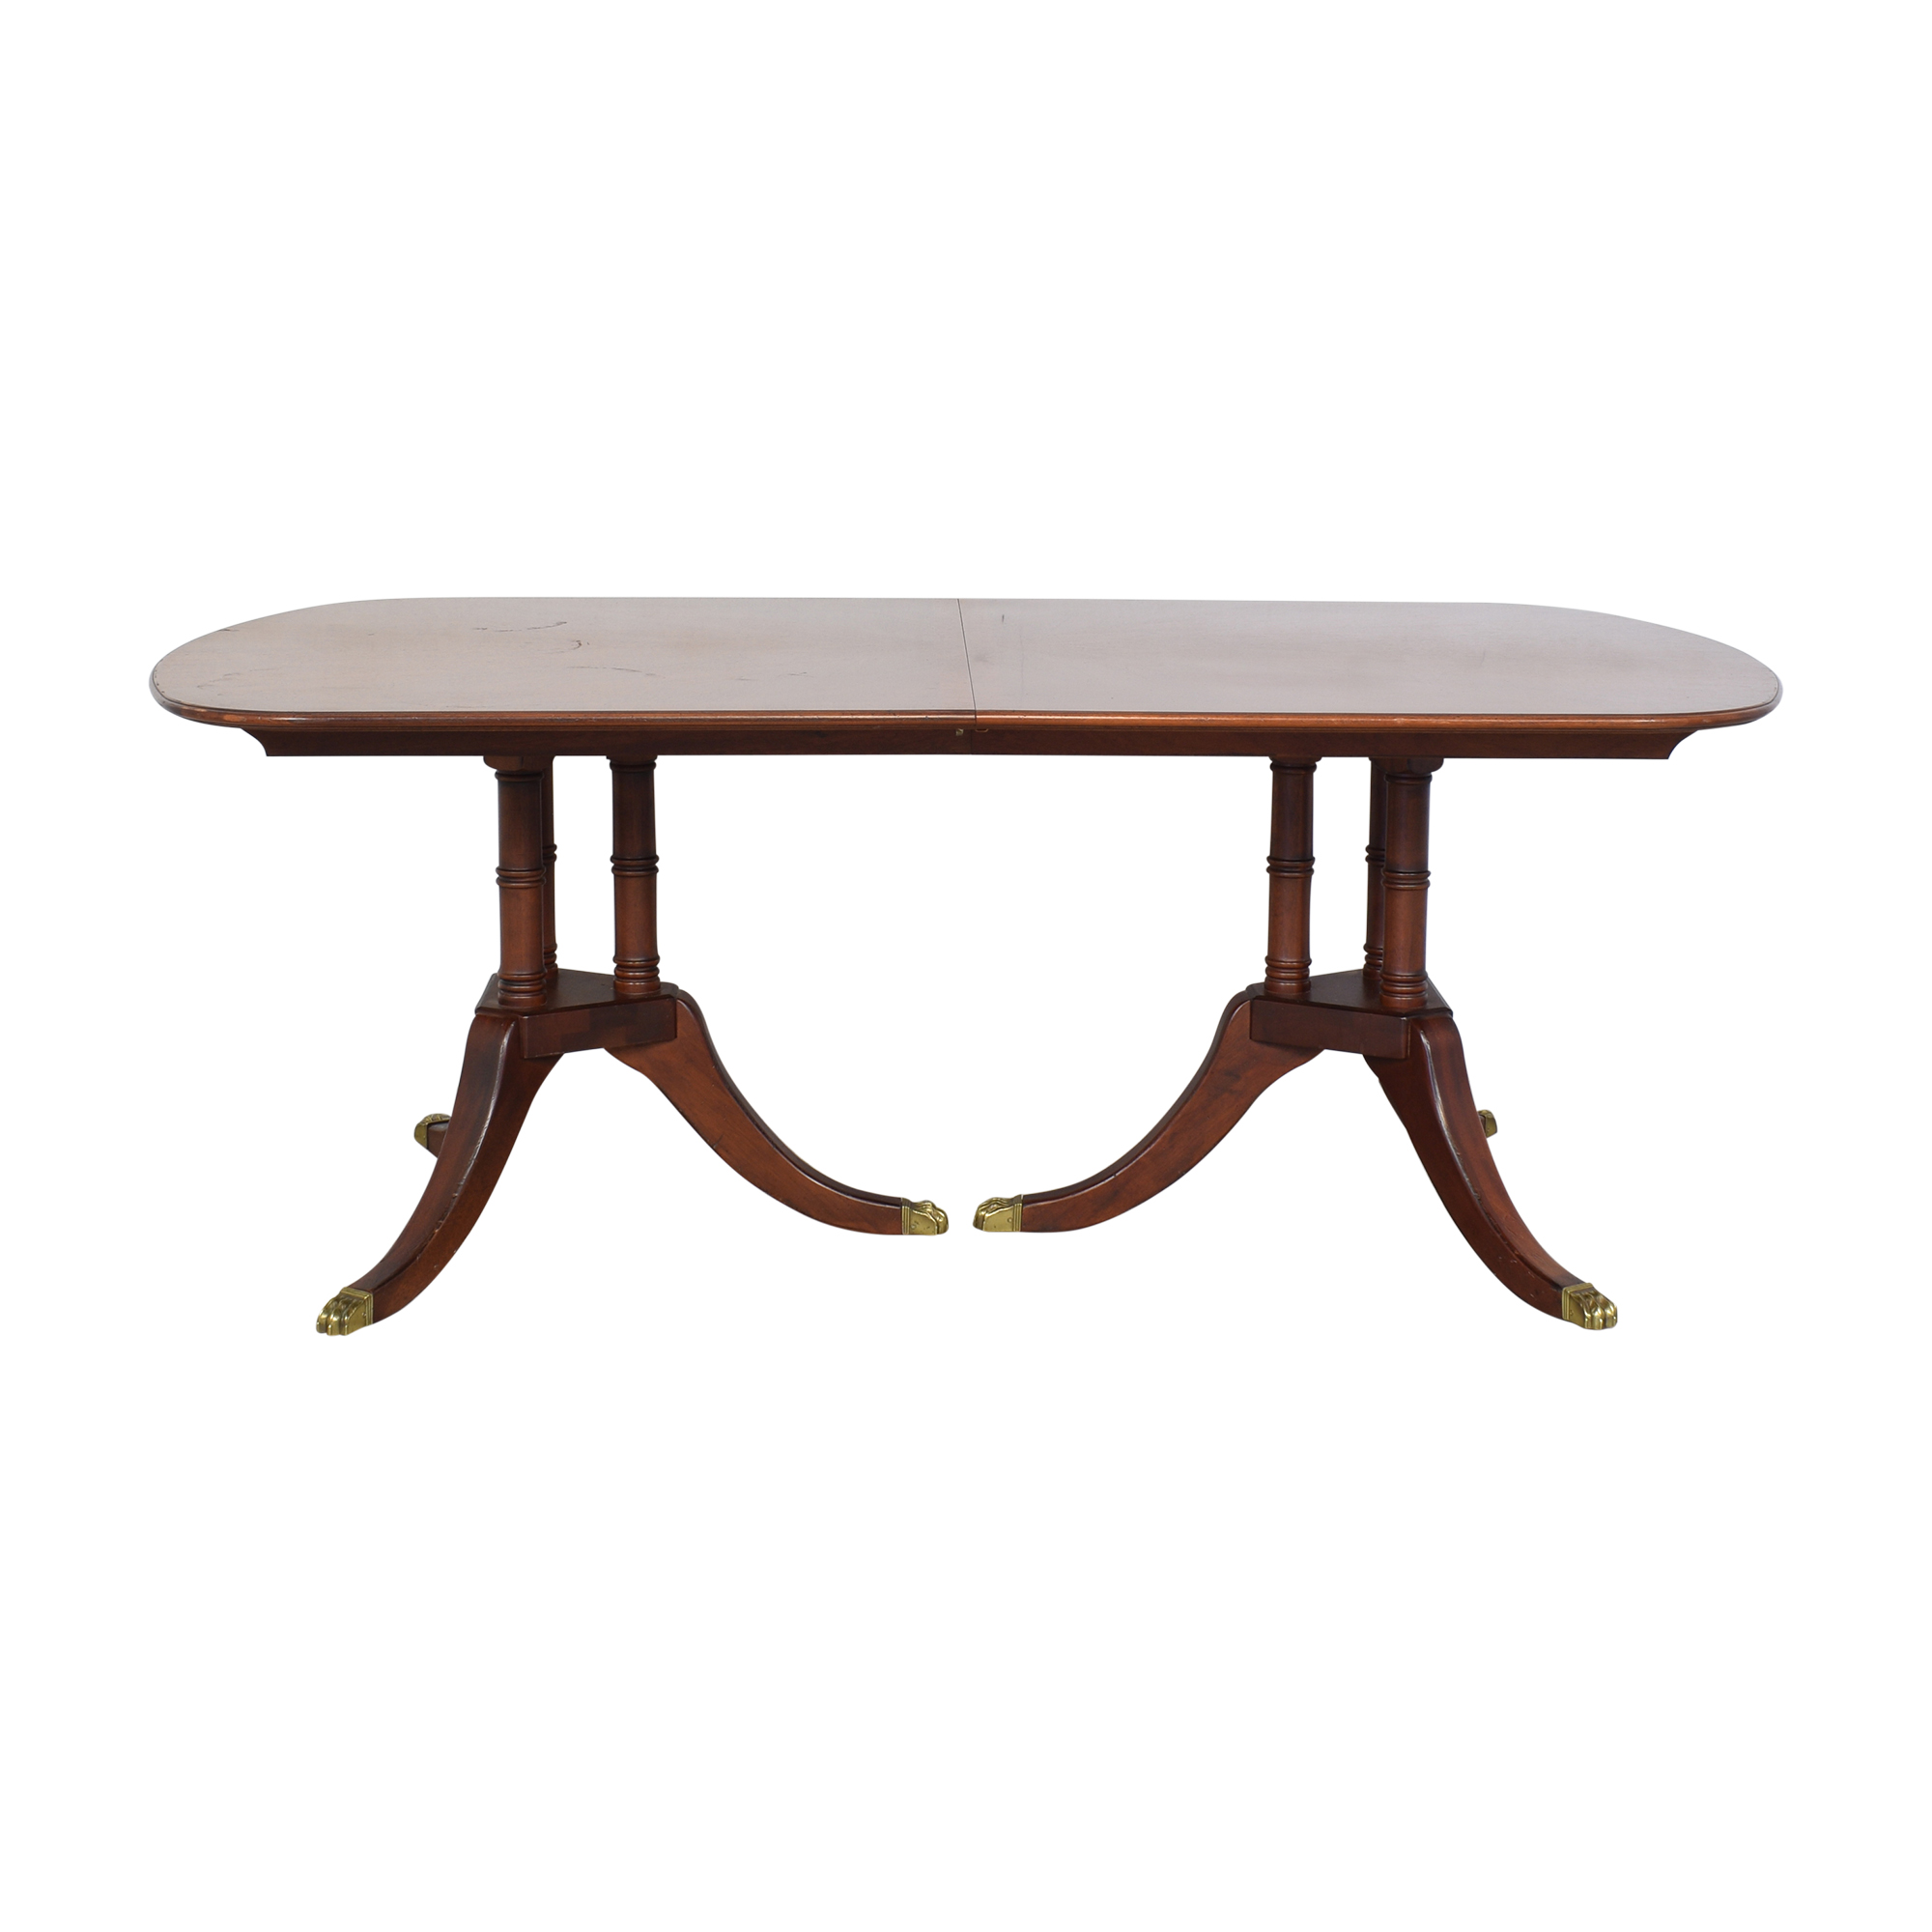 Drexel Heritage Drexel Heritage Expandable Dining Table used